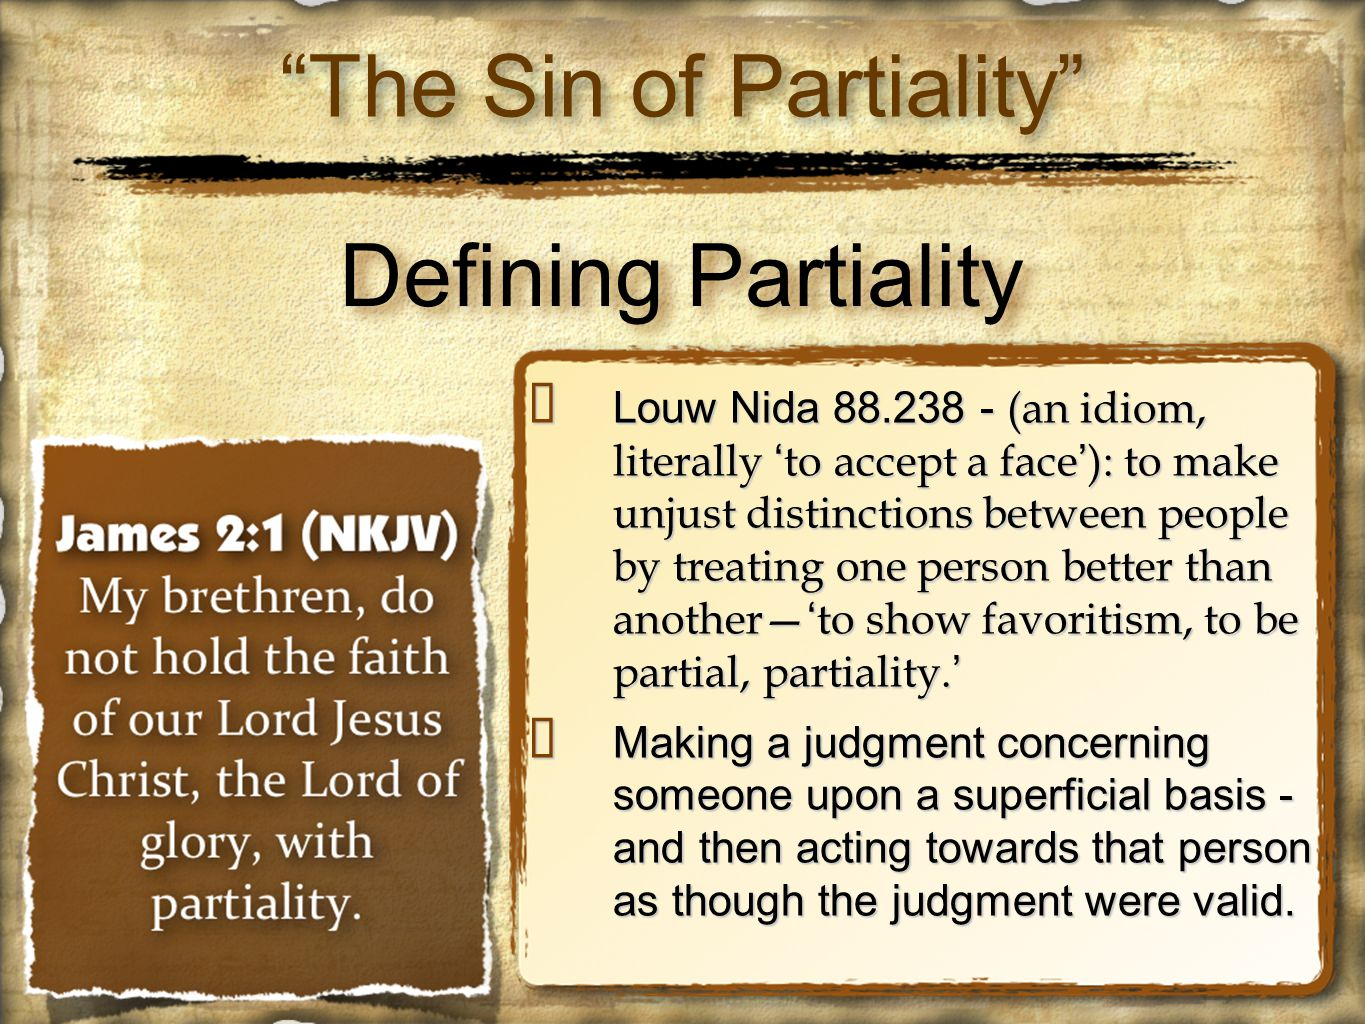 Partiality Is Contrary To The Faith We Have In Jesus (2:1-4) ✦ Do not hold your faith in our glorious Lord - (NASB) ✴ It is inconsistent to claim faith in Jesus & show respect of persons - (John 4:9; Mat 8:5,10; 4:18,19; 9:9,10; Luke 7:36; John 7:24) ✴ Our Lord Jesus Christ, the Lord of Glory - [ Ruler, Savior, God ] - Ps.